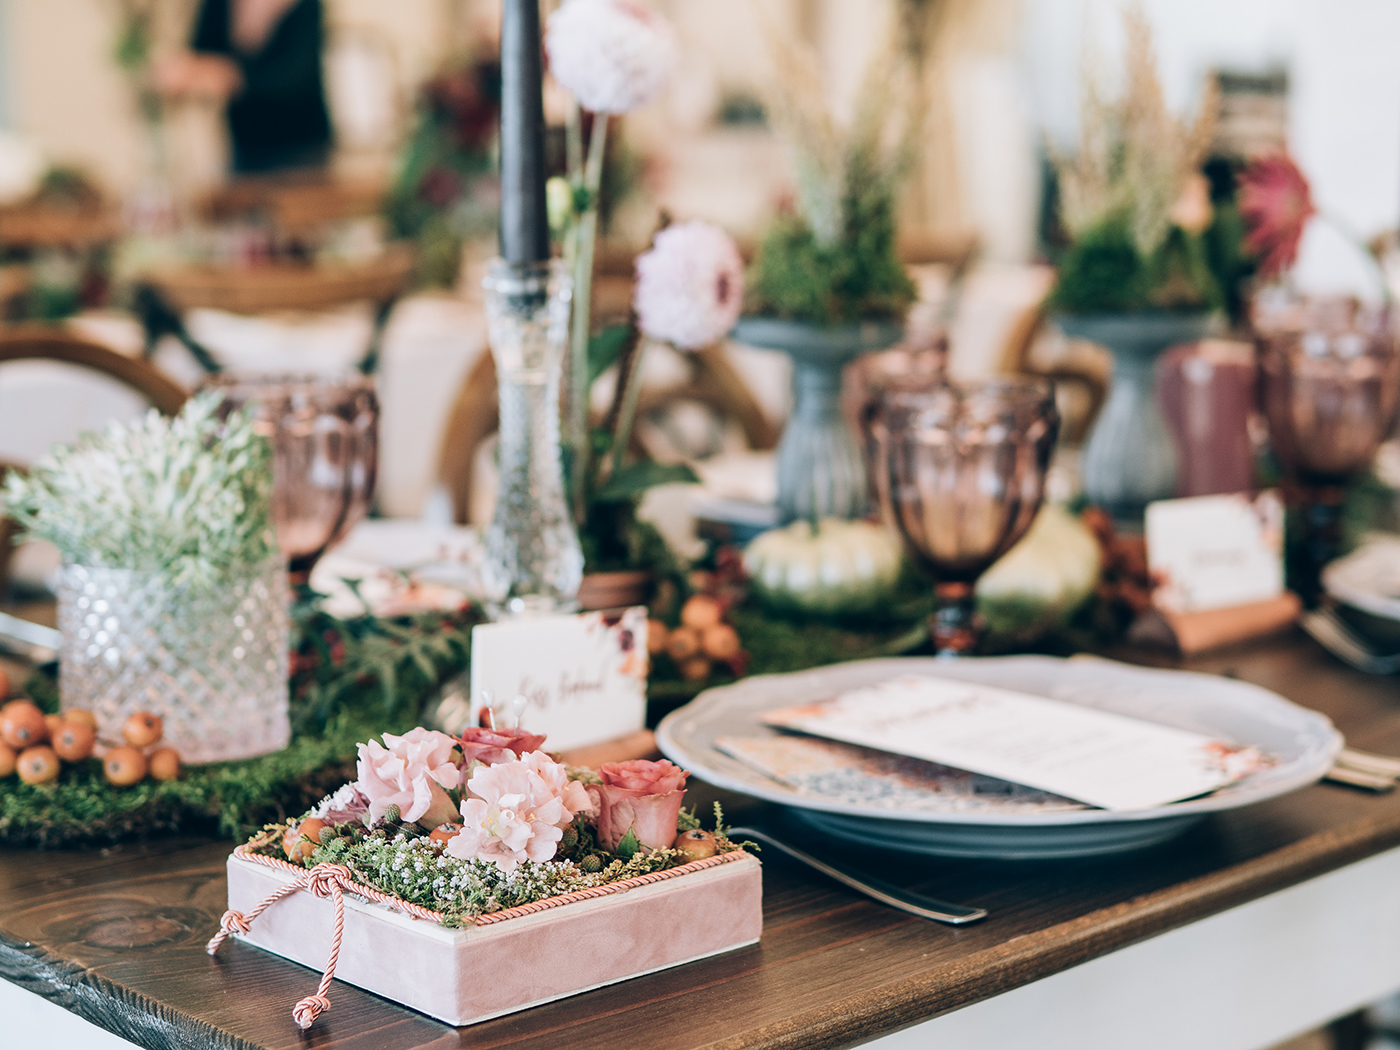 A wedding reception table decorated.